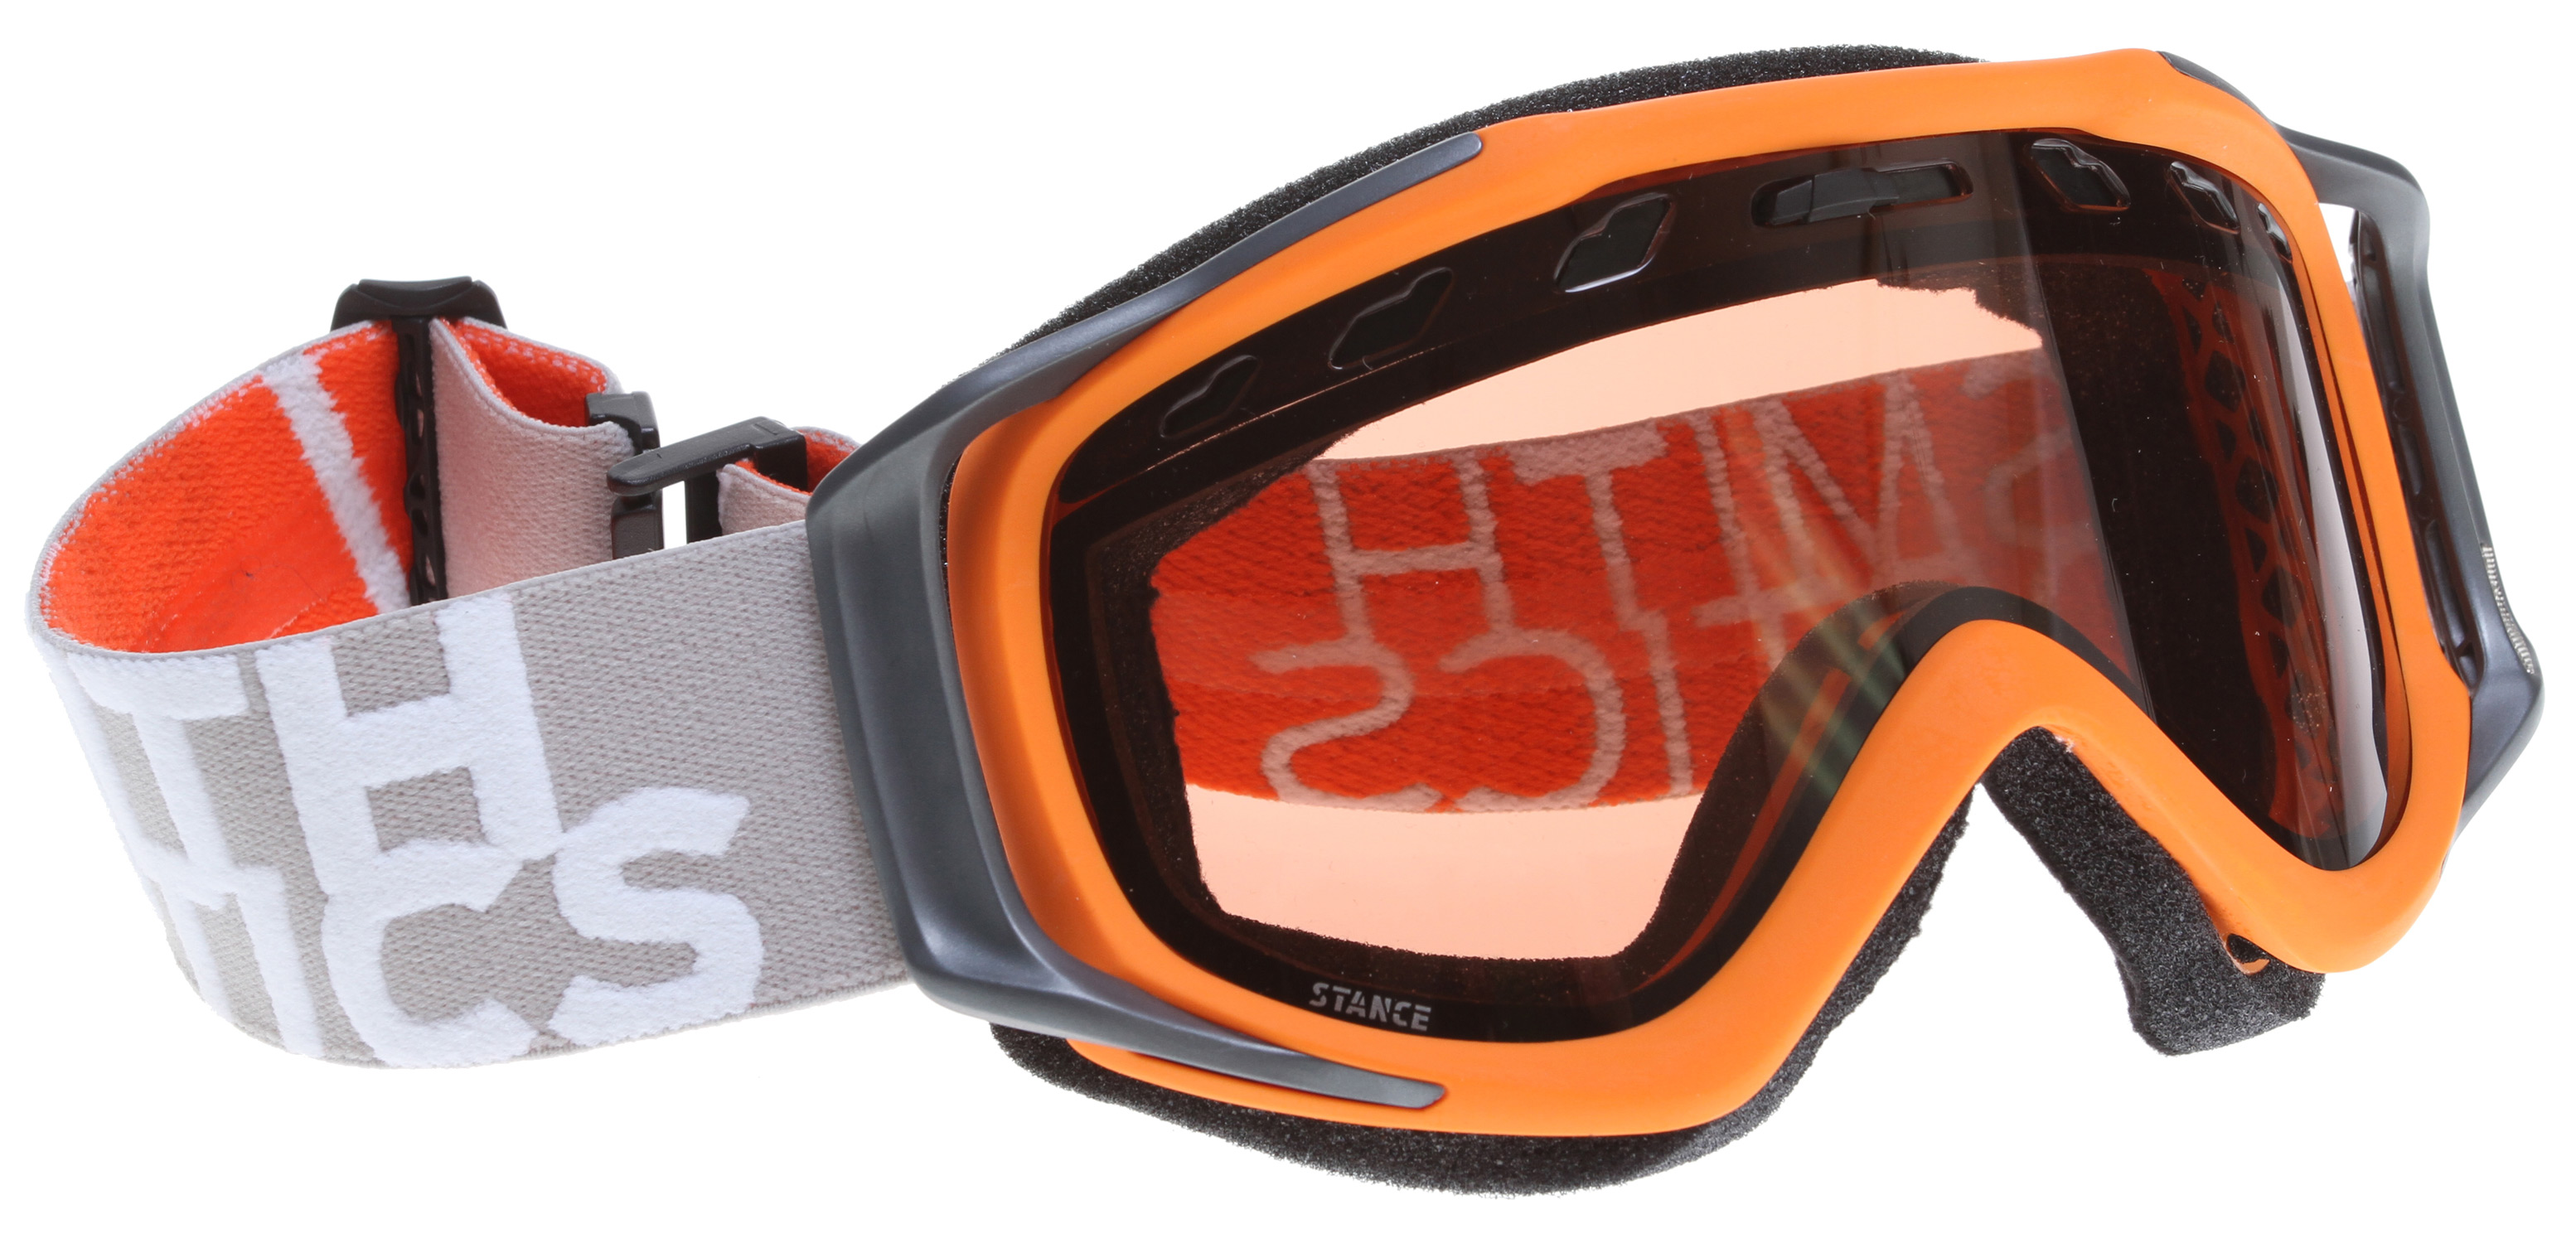 Snowboard The Stance is the direct result of our dedication to integrate performance and style. The Ergonomic Outrigger Positioning System and metal badge detailing bring refined style to the Regulator Series. Just under the surface, all Fuse devotees will be stoked to know that the Stance maintains the incredible fit and peripheral that made the Fuse so popular.Key Features of the Smith Stance Snowboard Goggles: Medium Fit and Helmet compatible Spherical and Cylindrical Carbonic-X lenses with TLT optics, Porex Filter and Fog-X anti-fog inner lens Articulating and Ergonomic outrigger positioning systems with Ultra-Wide, Silicone Backed Strap Includes Microfiber Goggle Bag Manufacturer's Lifetime Warranty 35% Visual Light Transmission (VLT) Conditions: Low/Medium/Bright Light Proprietary universal lens tint designed to reduce eye fatigue while enhancing contrast and depth perception in all conditions. A versatile lens tint designed to be used all season long. - $45.95